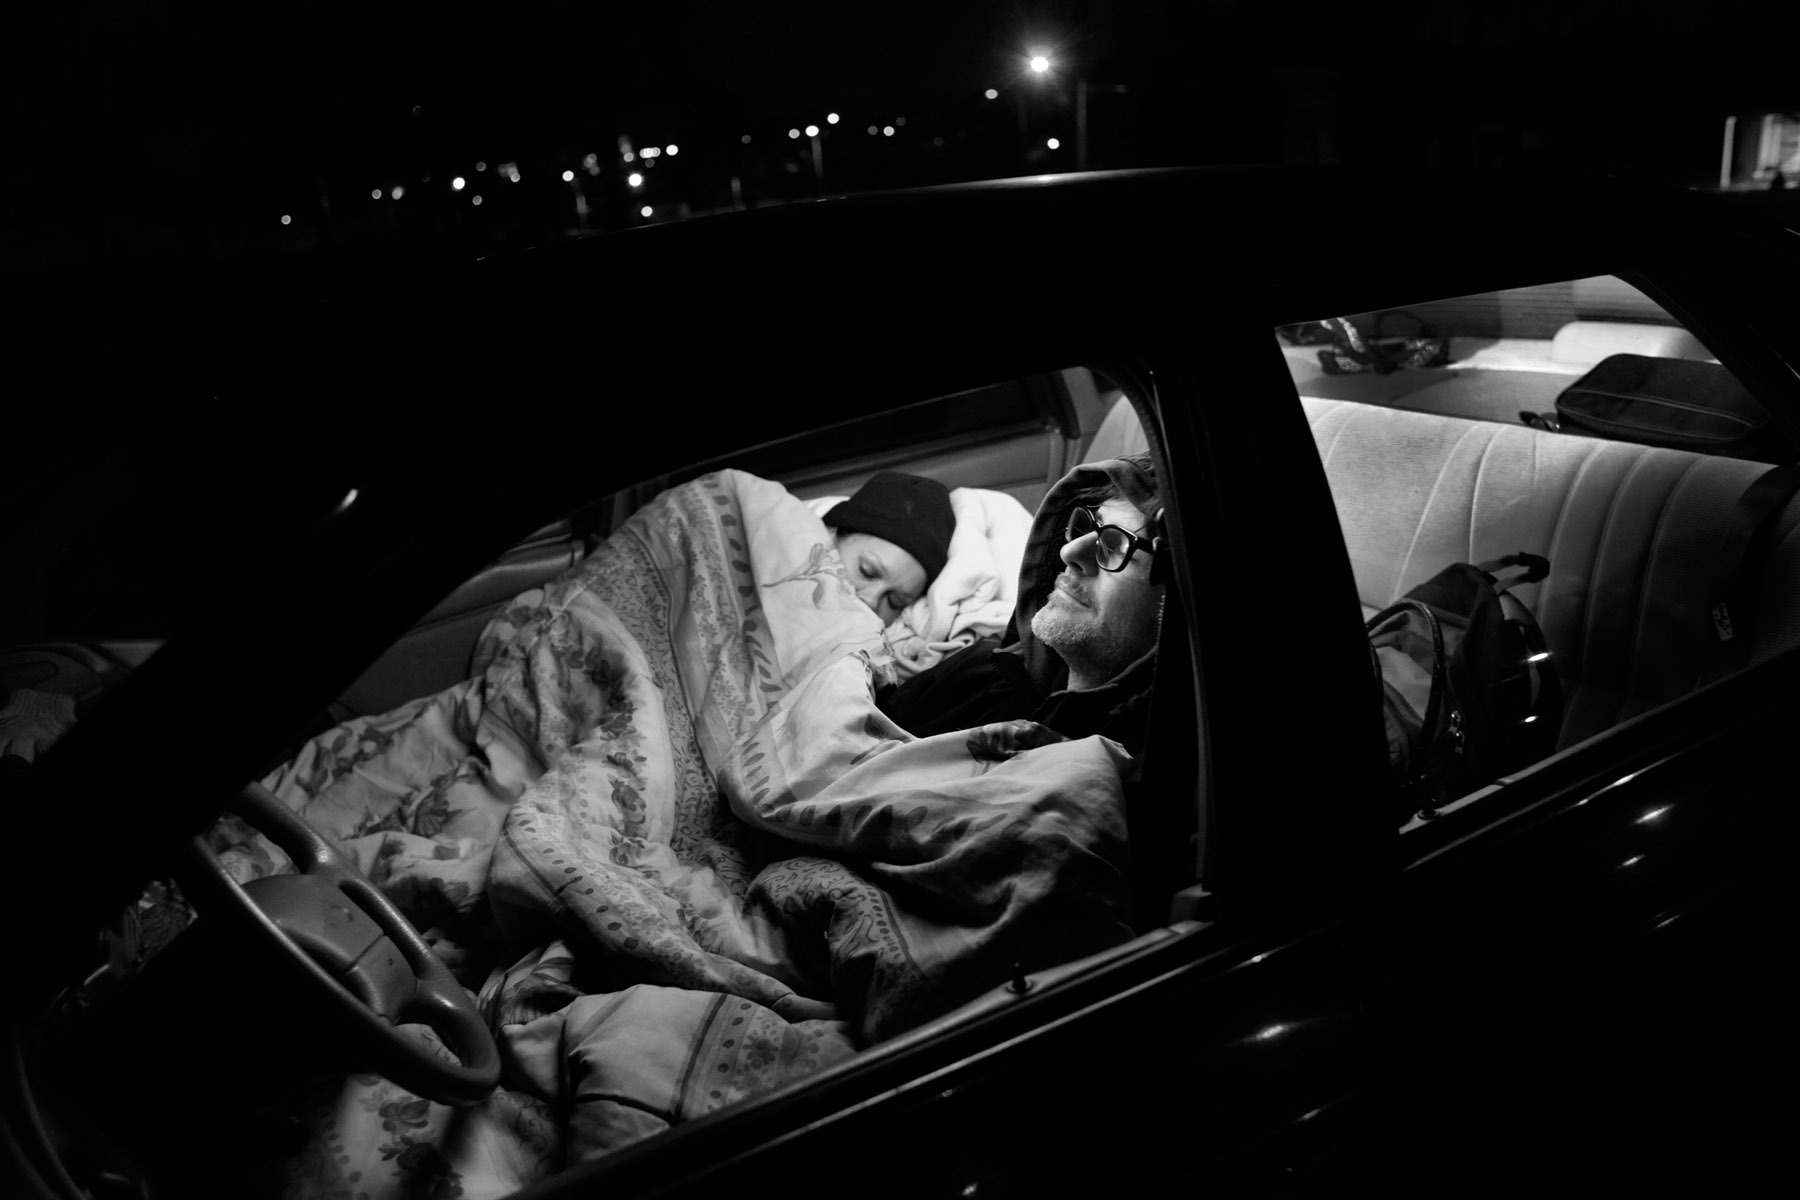 First Place | News Photo Story Travis Long, The News & ObserverCharmain Williams, left, and her boyfriend Milton Horton sleep in sub-freezing weather inside Horton's 1994 Ford Taurus Wednesday, January 23, 2013, in a city park in Raleigh. The couple have been homeless for four months living in their car and eating at soup kitchens. Horton says he's been struggling to keep consistent employment for 5 years.